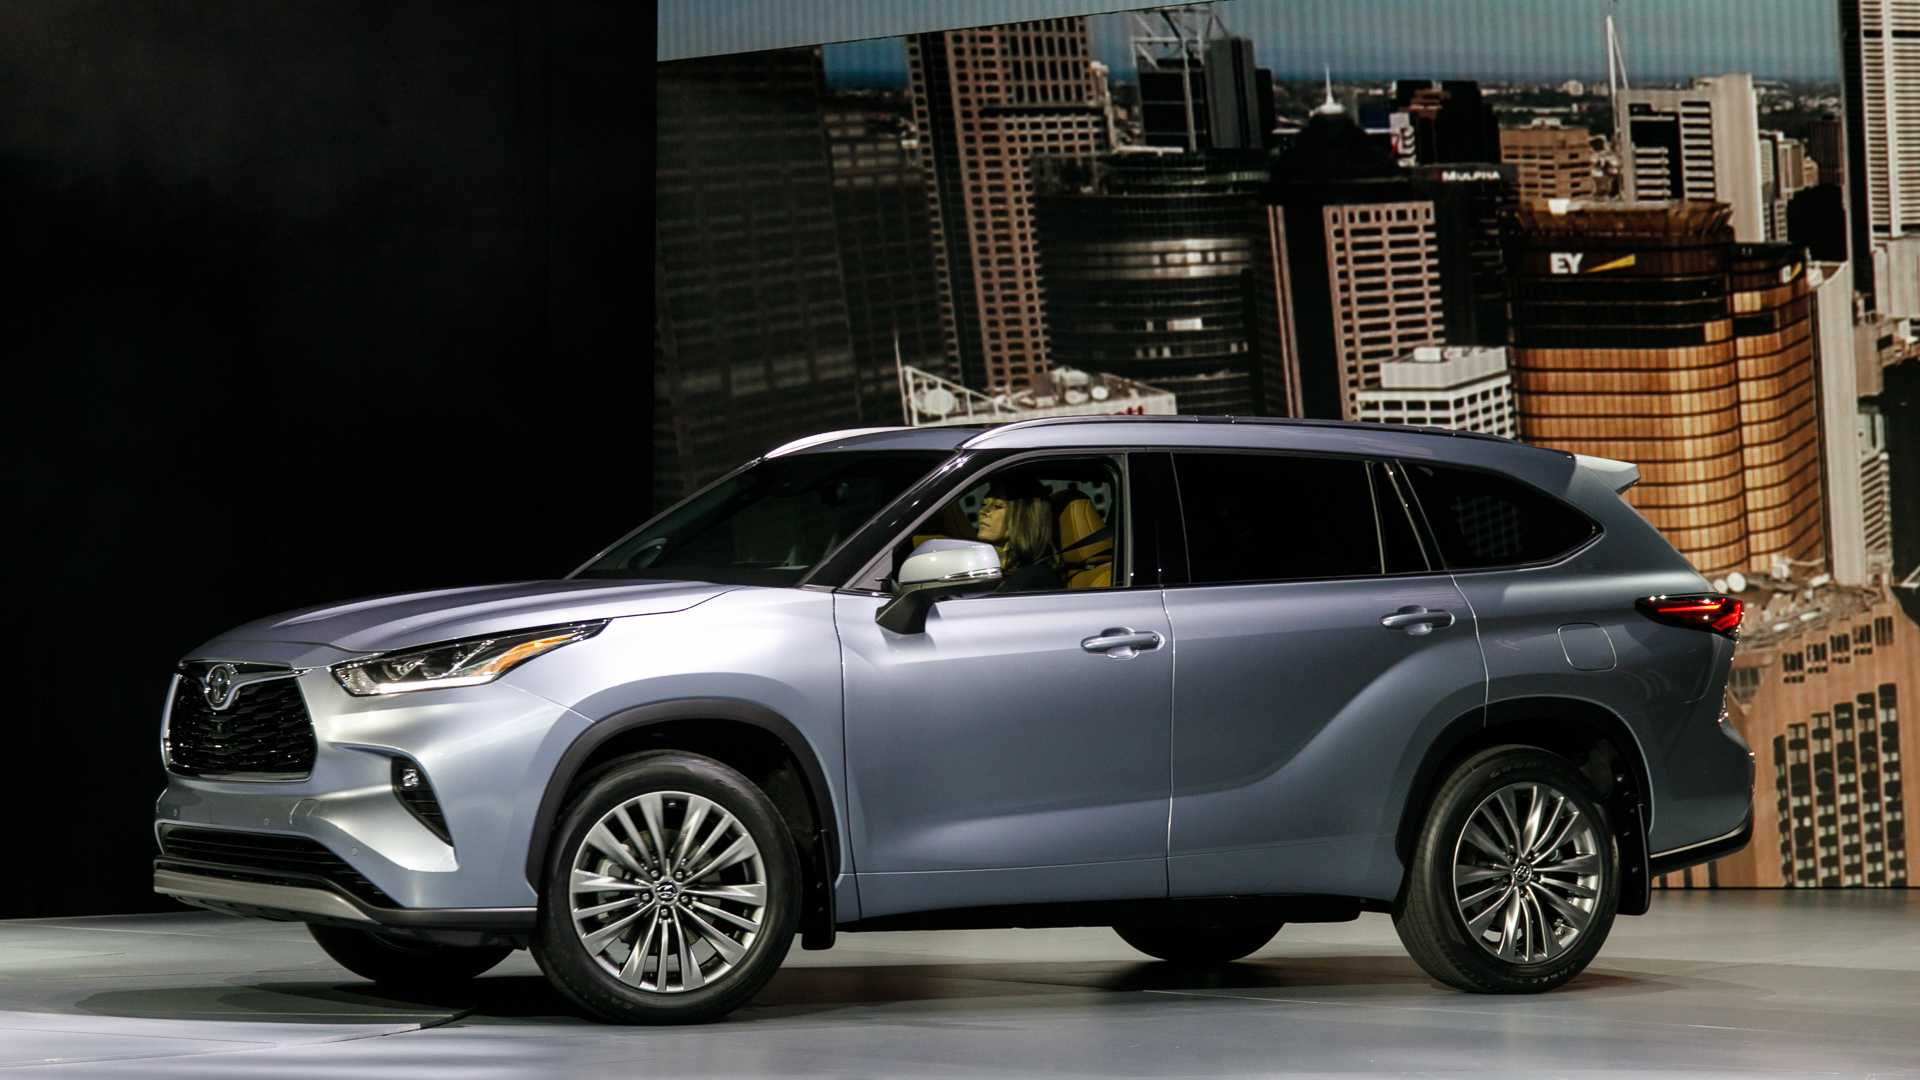 2020 Highlander Review.Video 2020 Toyota Highlander Is The Brand S Best Looking Yet